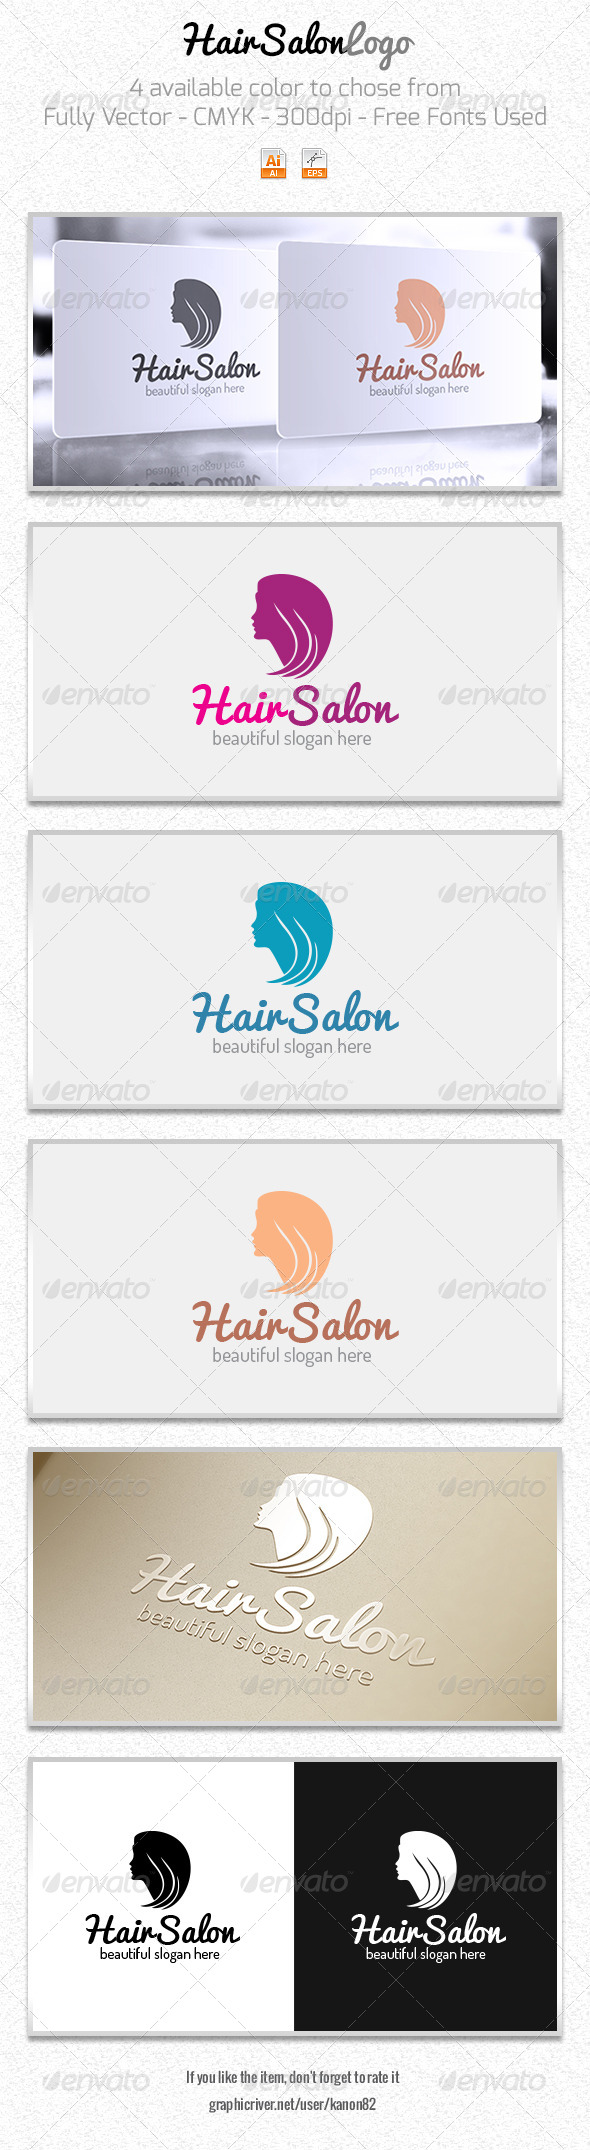 GraphicRiver Hair Style Logo 5968331